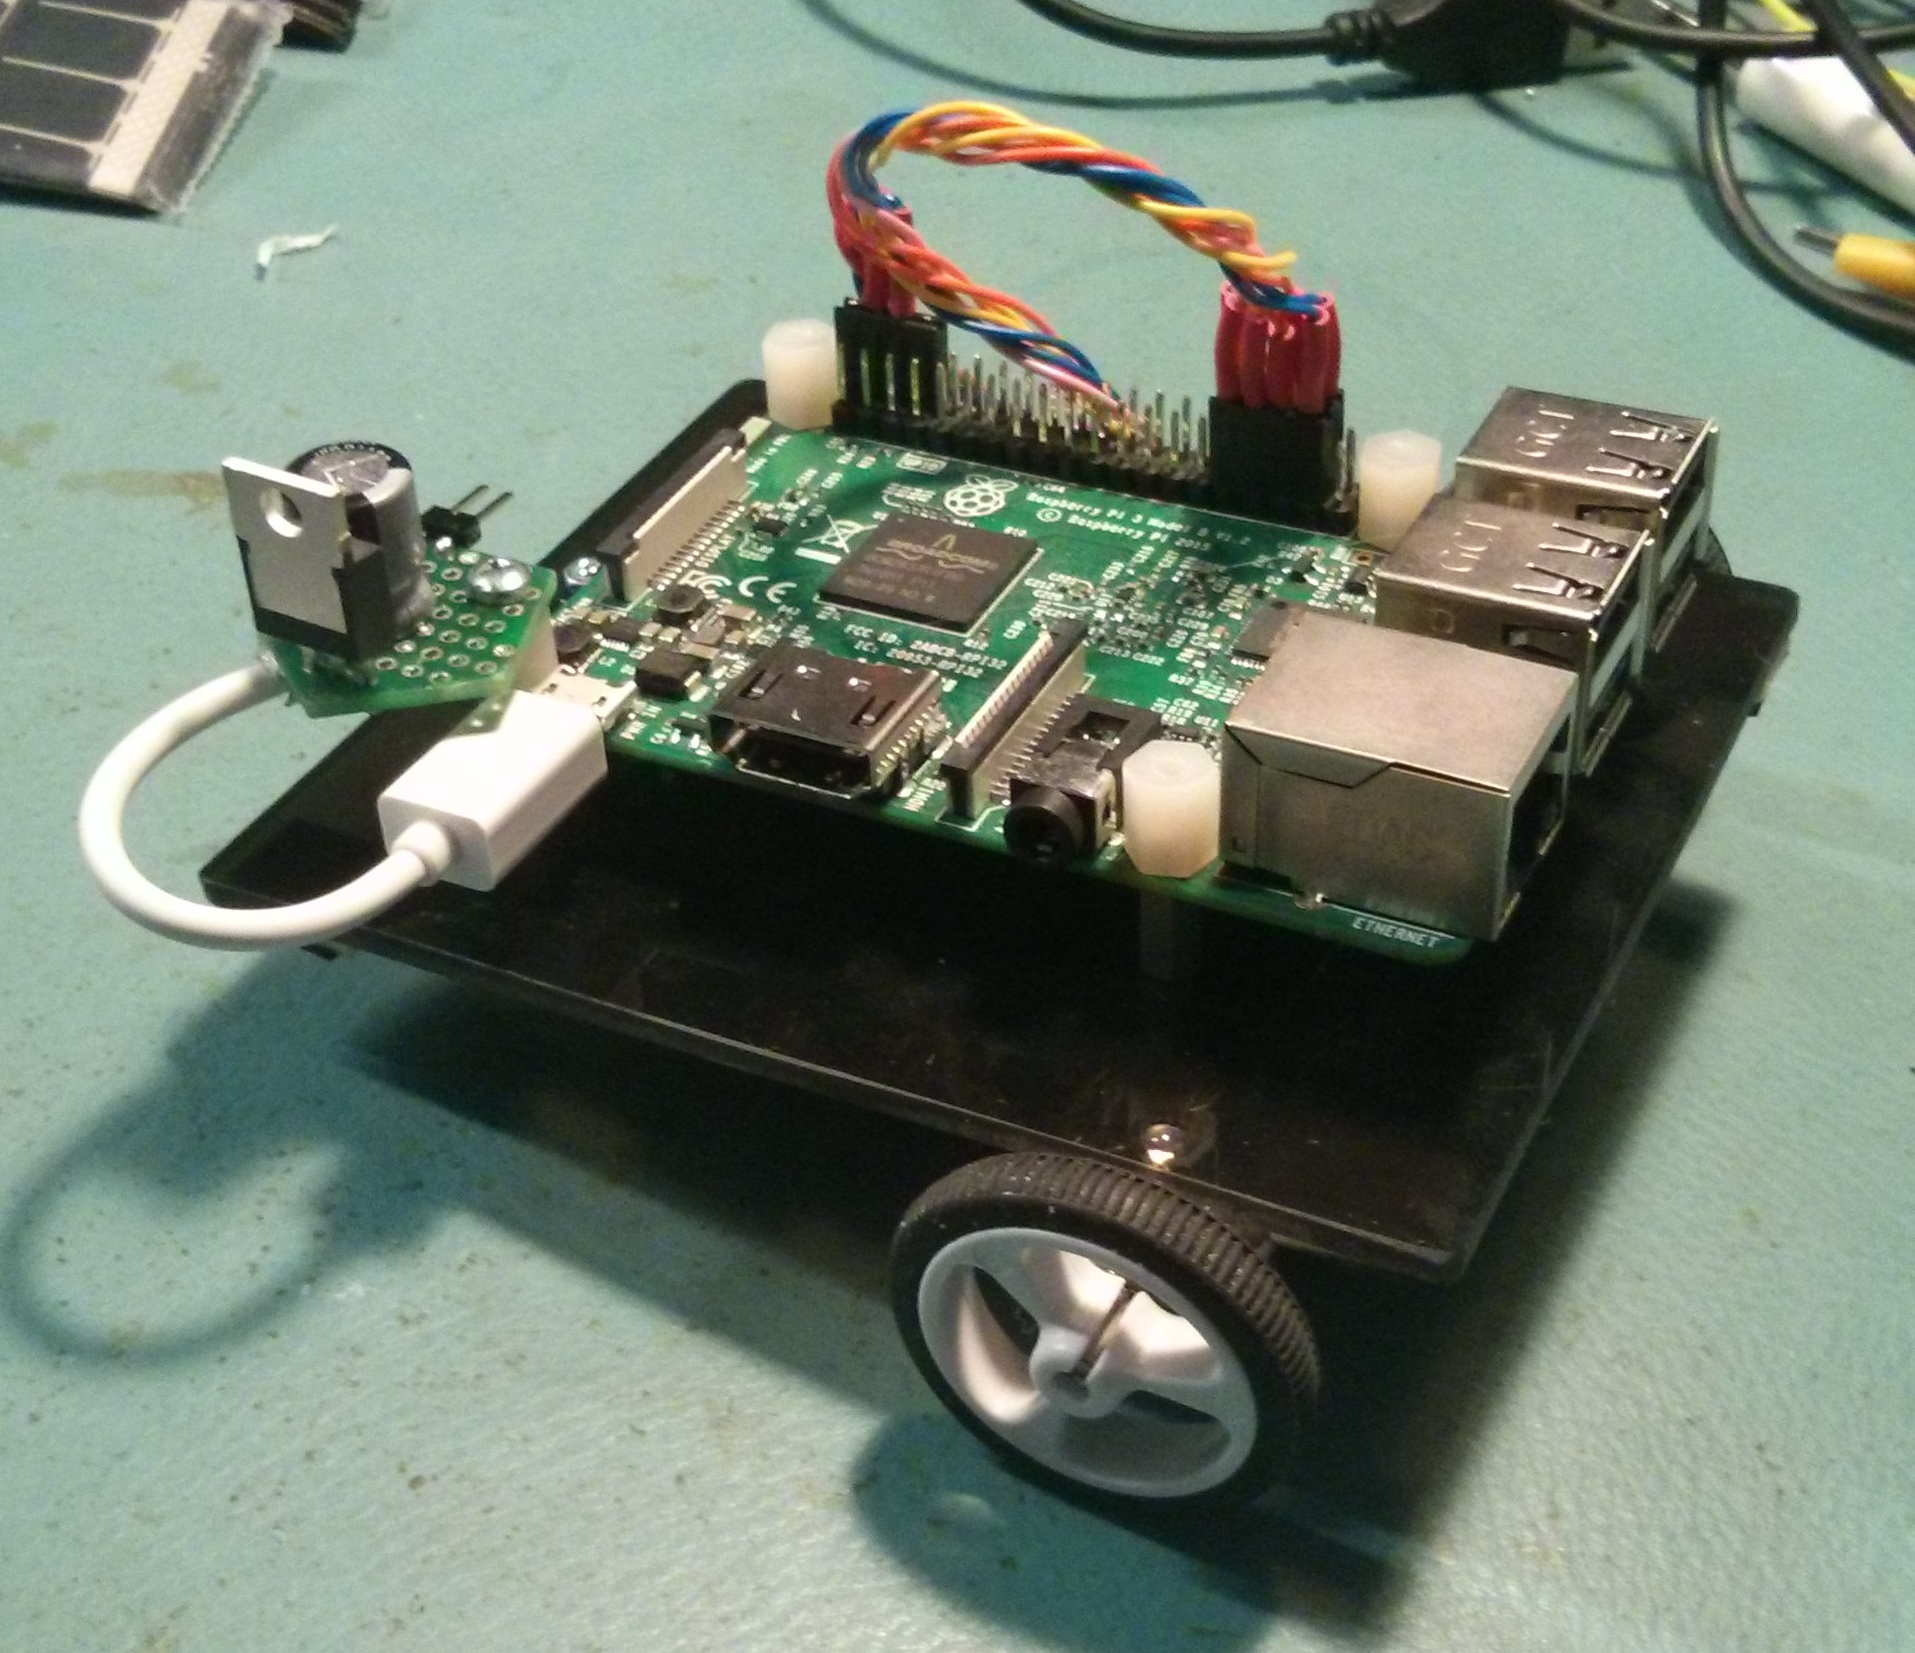 Hackbot In The Morning Iot Expert 555 Bistable Circuit Electronics Meccano Finished Raspberry Pi Bot